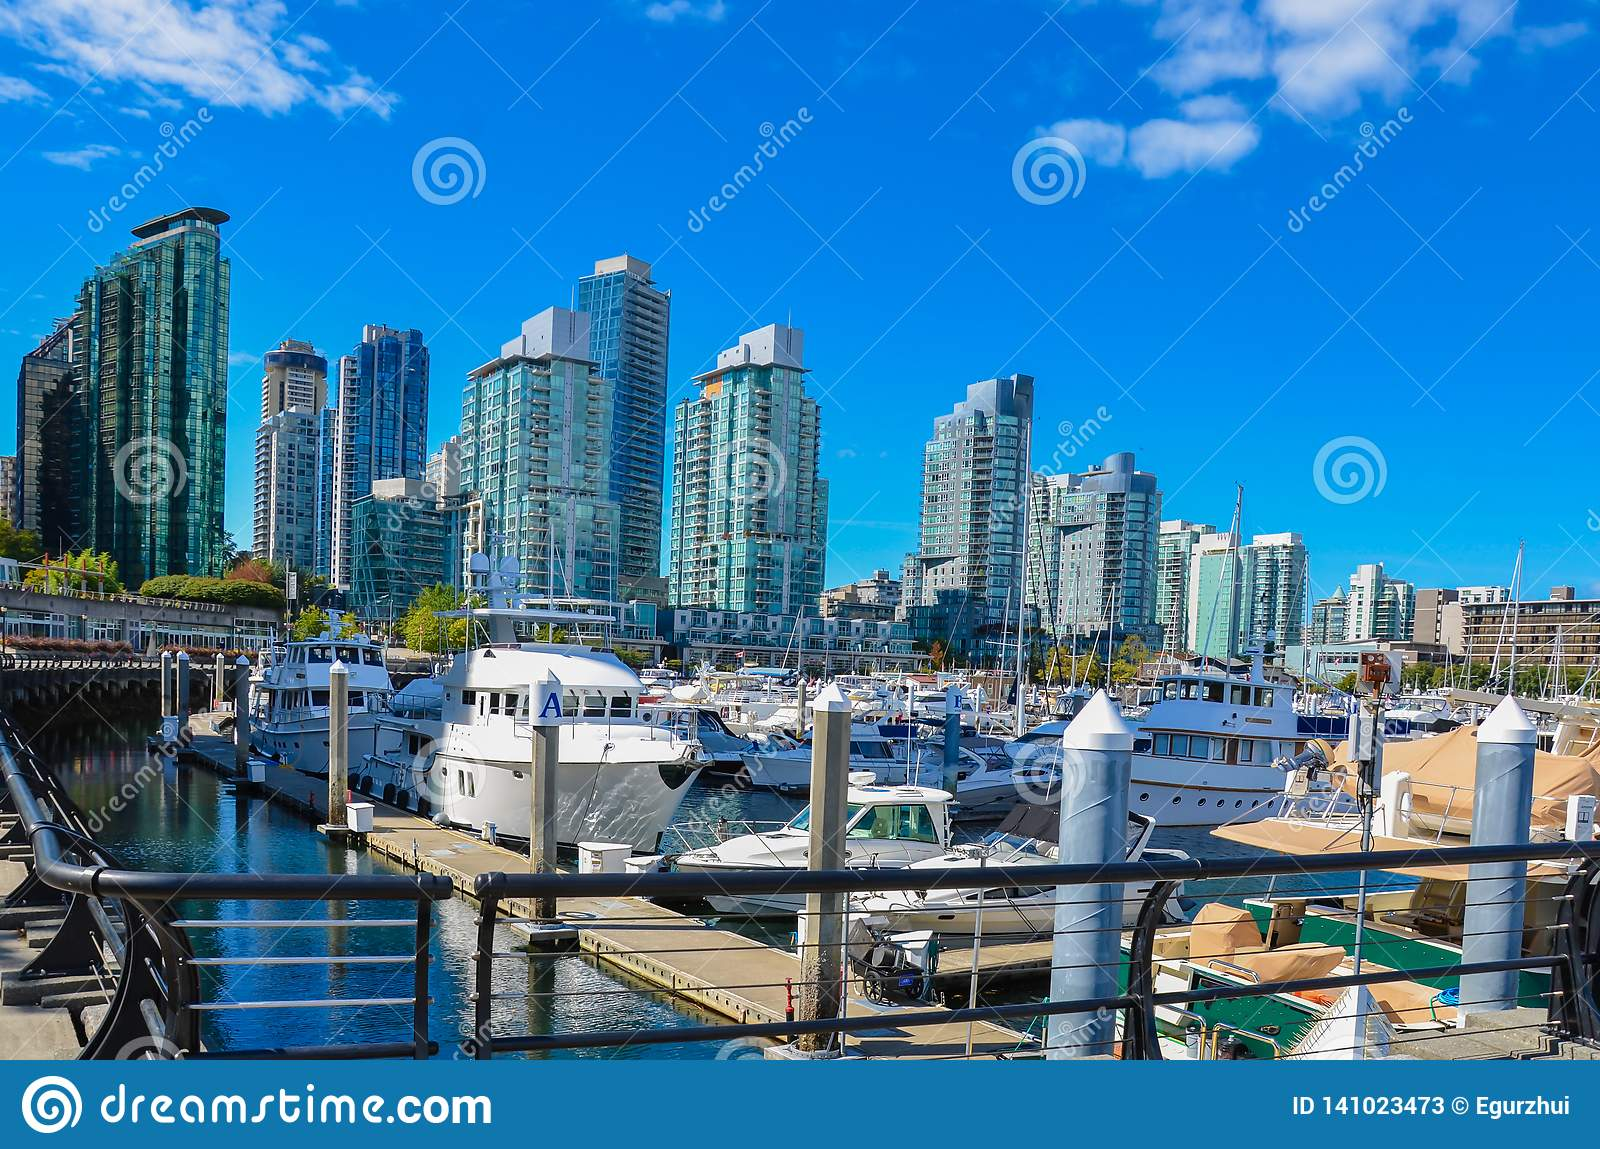 Marina and modern buildings in Vancouver, BC.